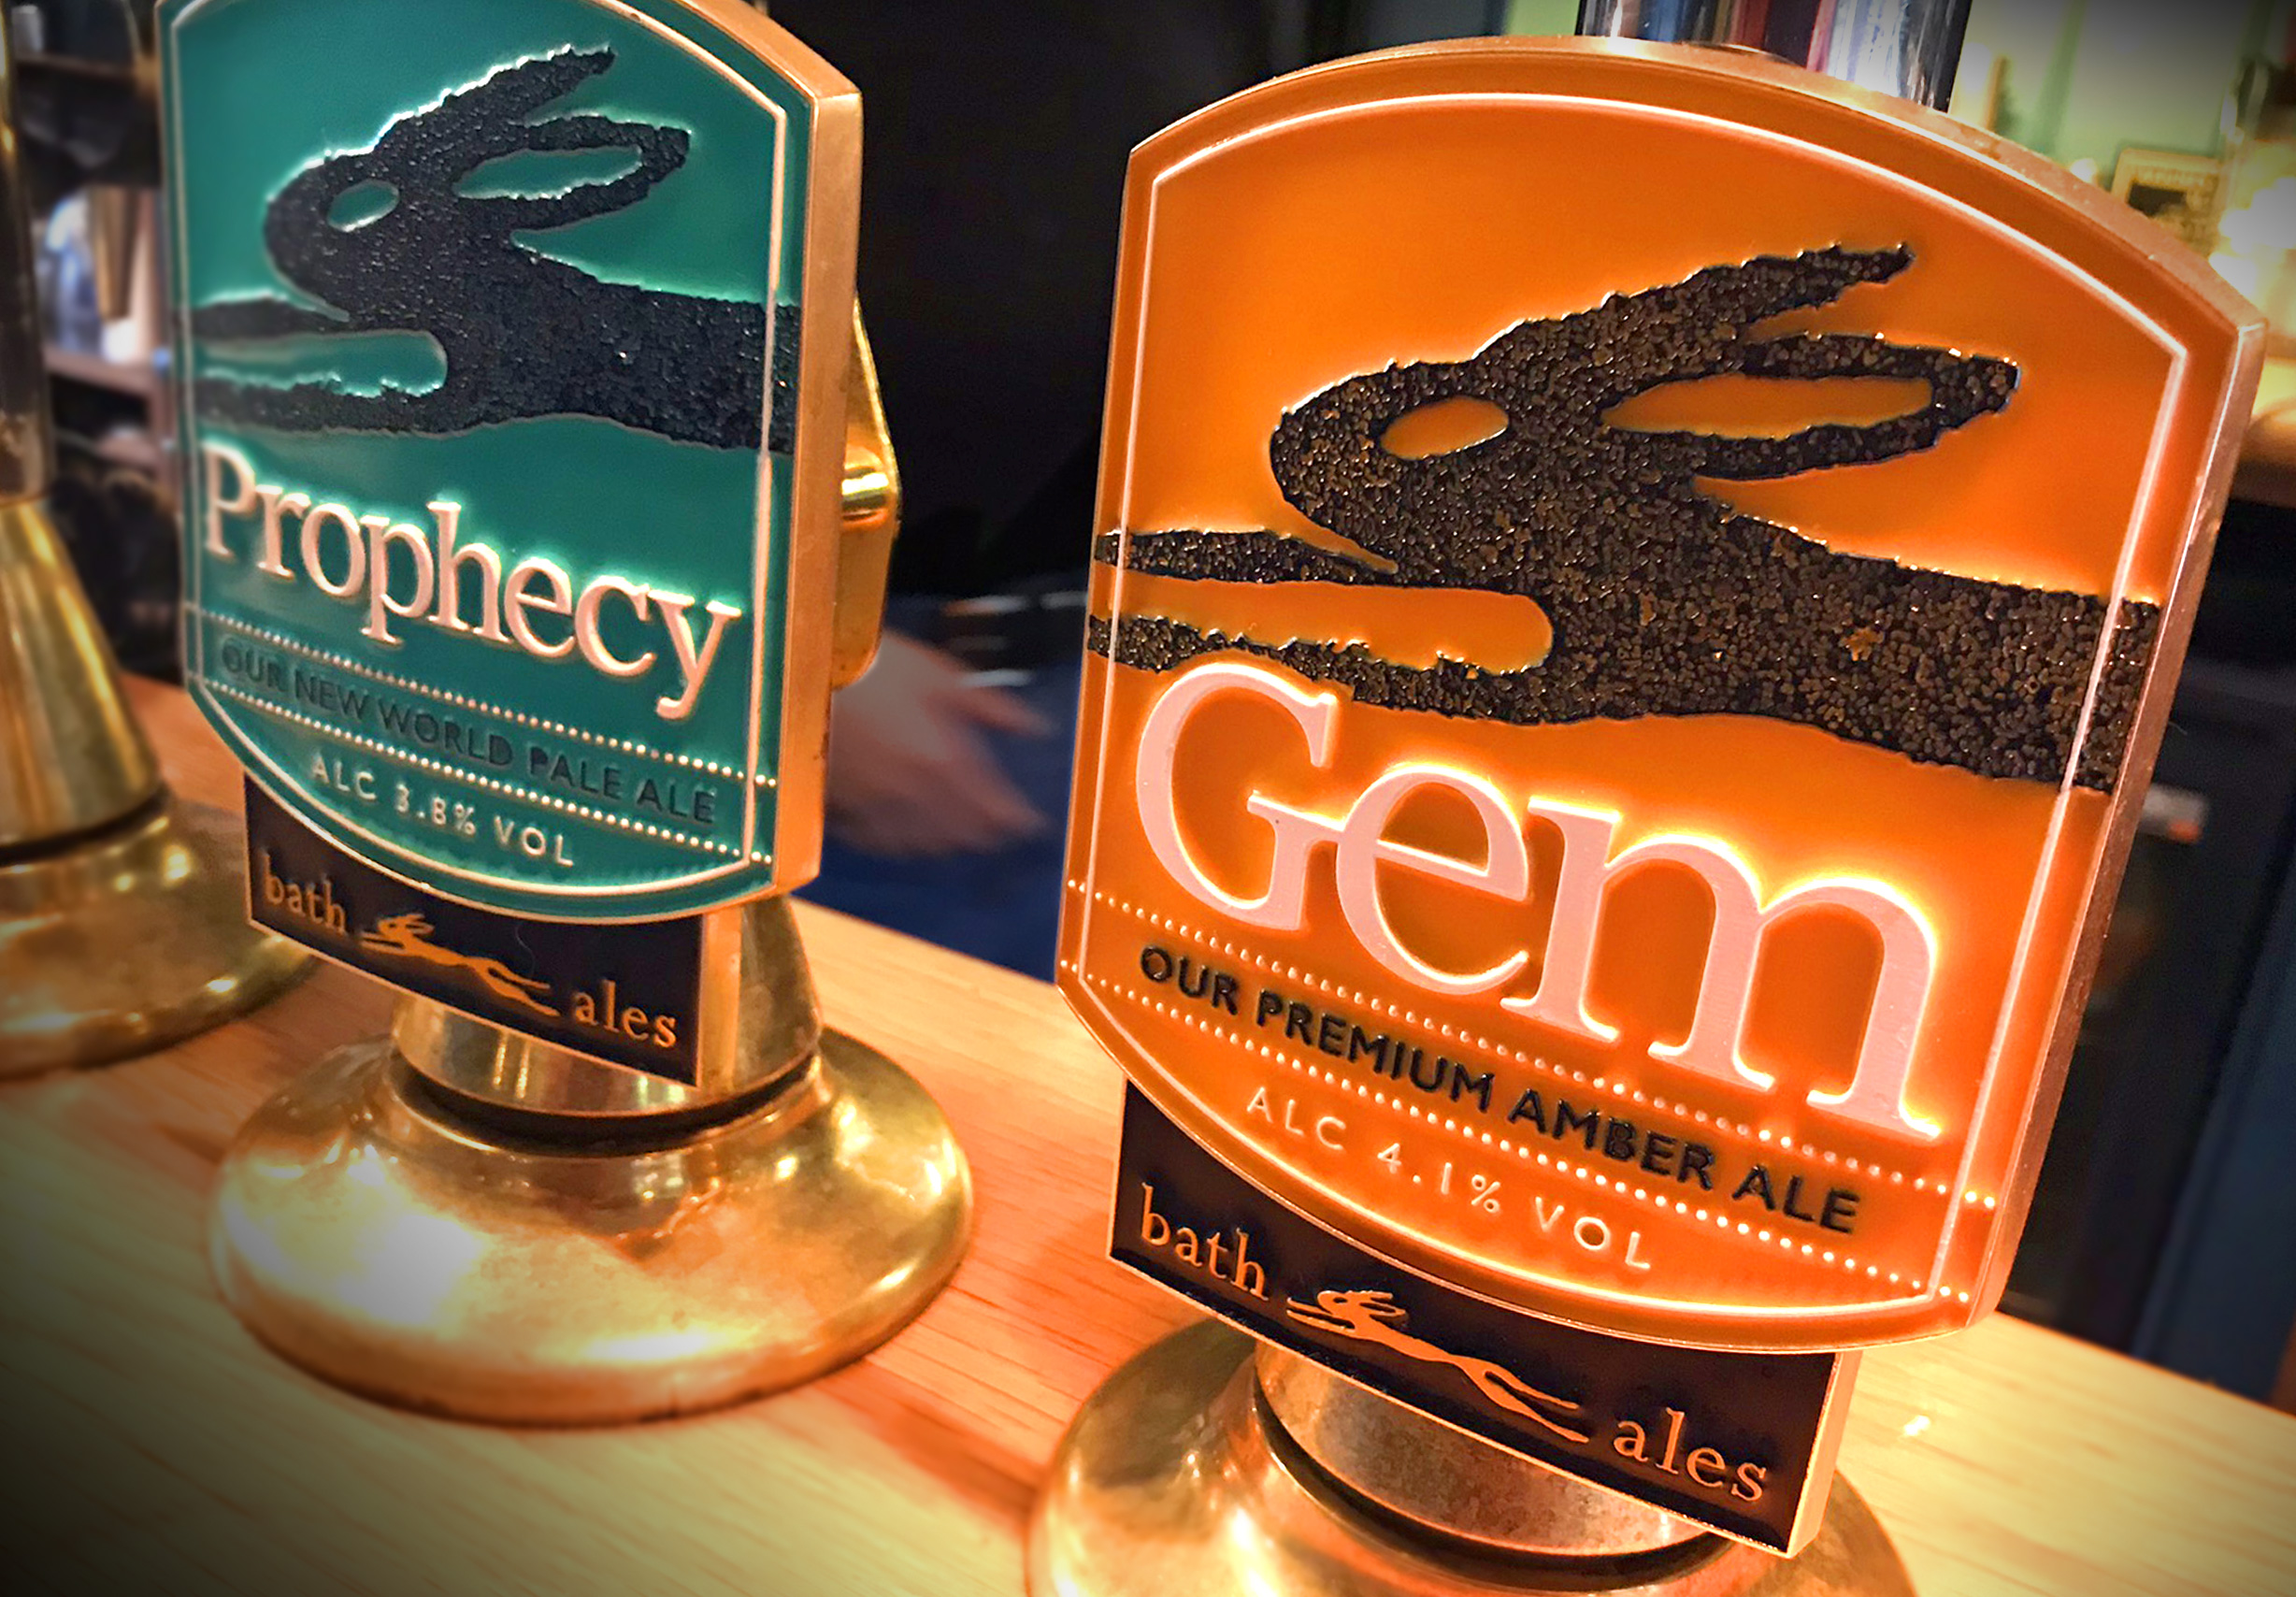 Bath Ales Gem and Prophecy pump clips